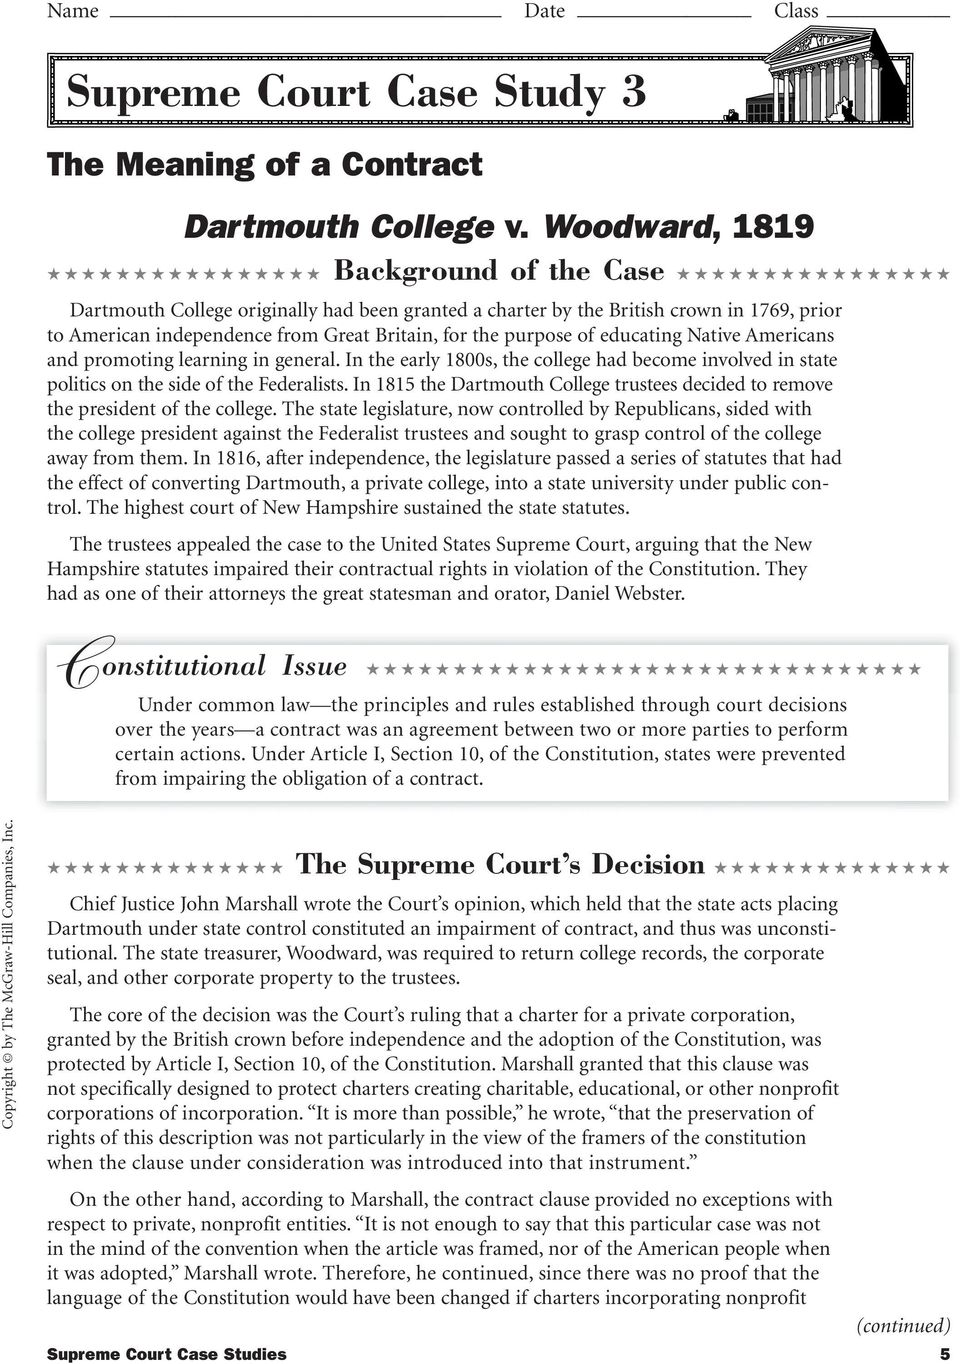 Worksheets Landmark Supreme Court Cases Worksheet collection of supreme court case analysis worksheet sharebrowse landmark cases worksheet